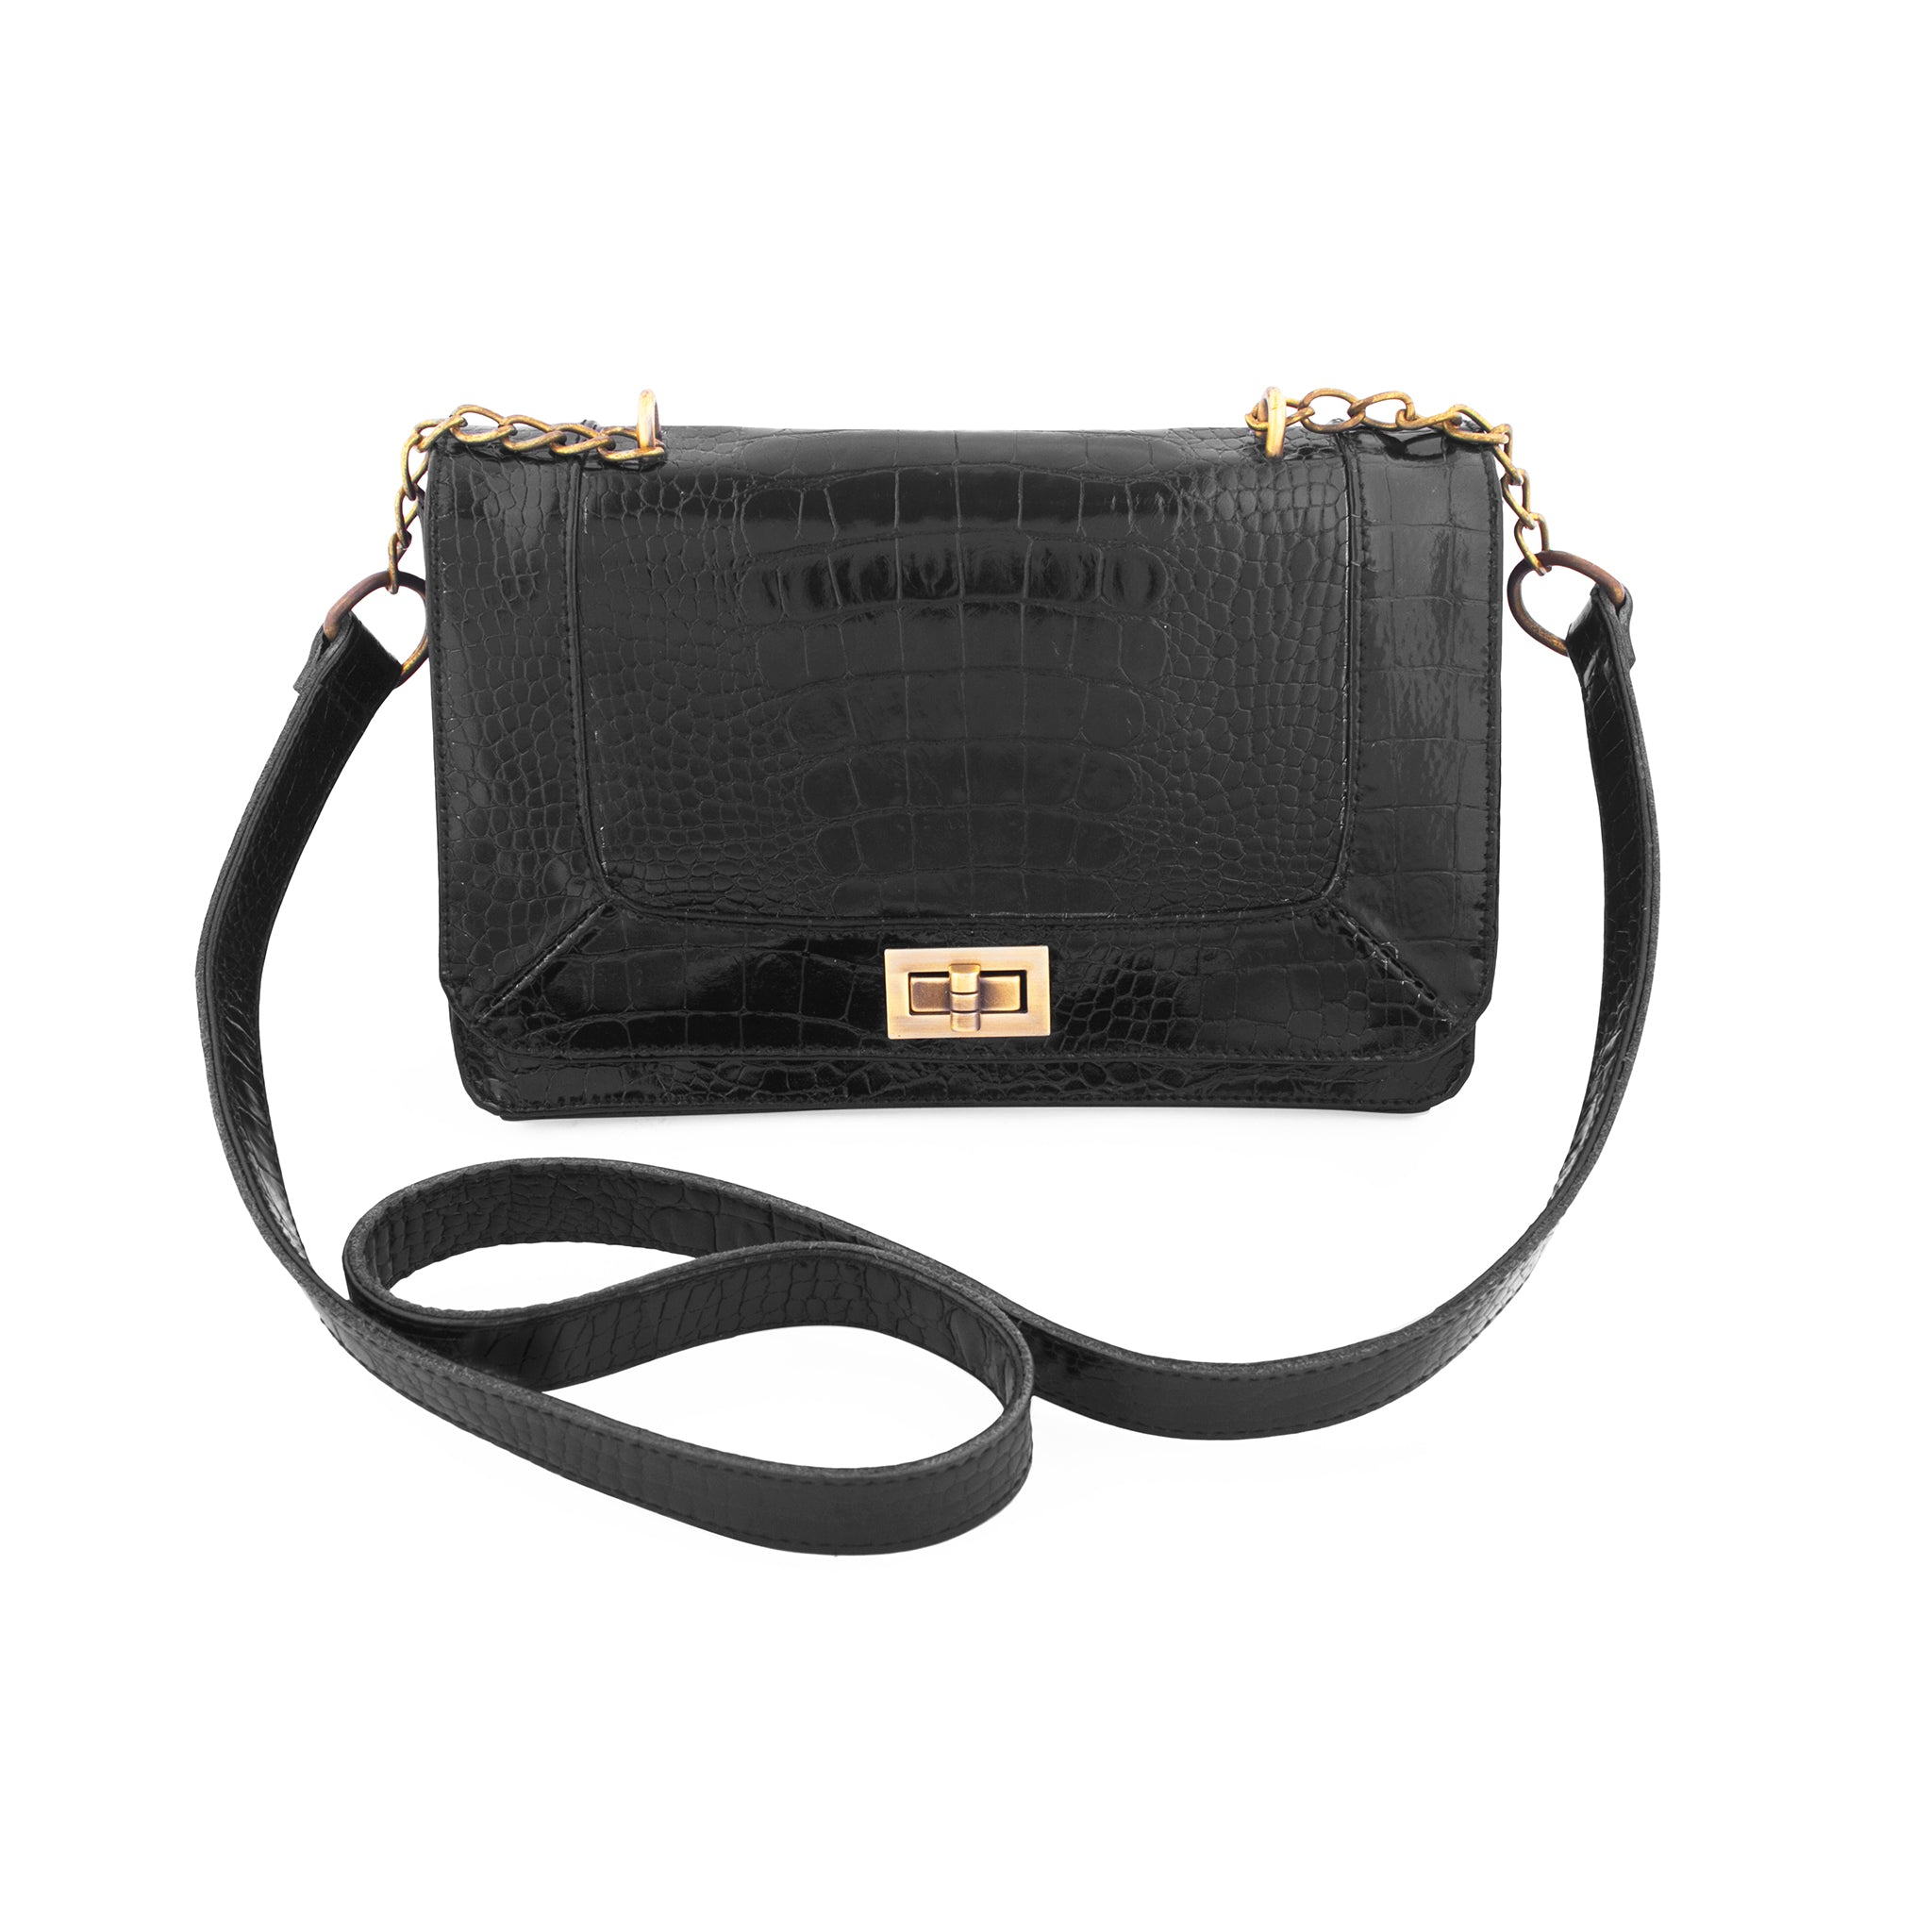 Evening handbag; afforable leather bags for women; affordable designer handbags; afforable leather bags; crossbody leather bag; messenger bags for women